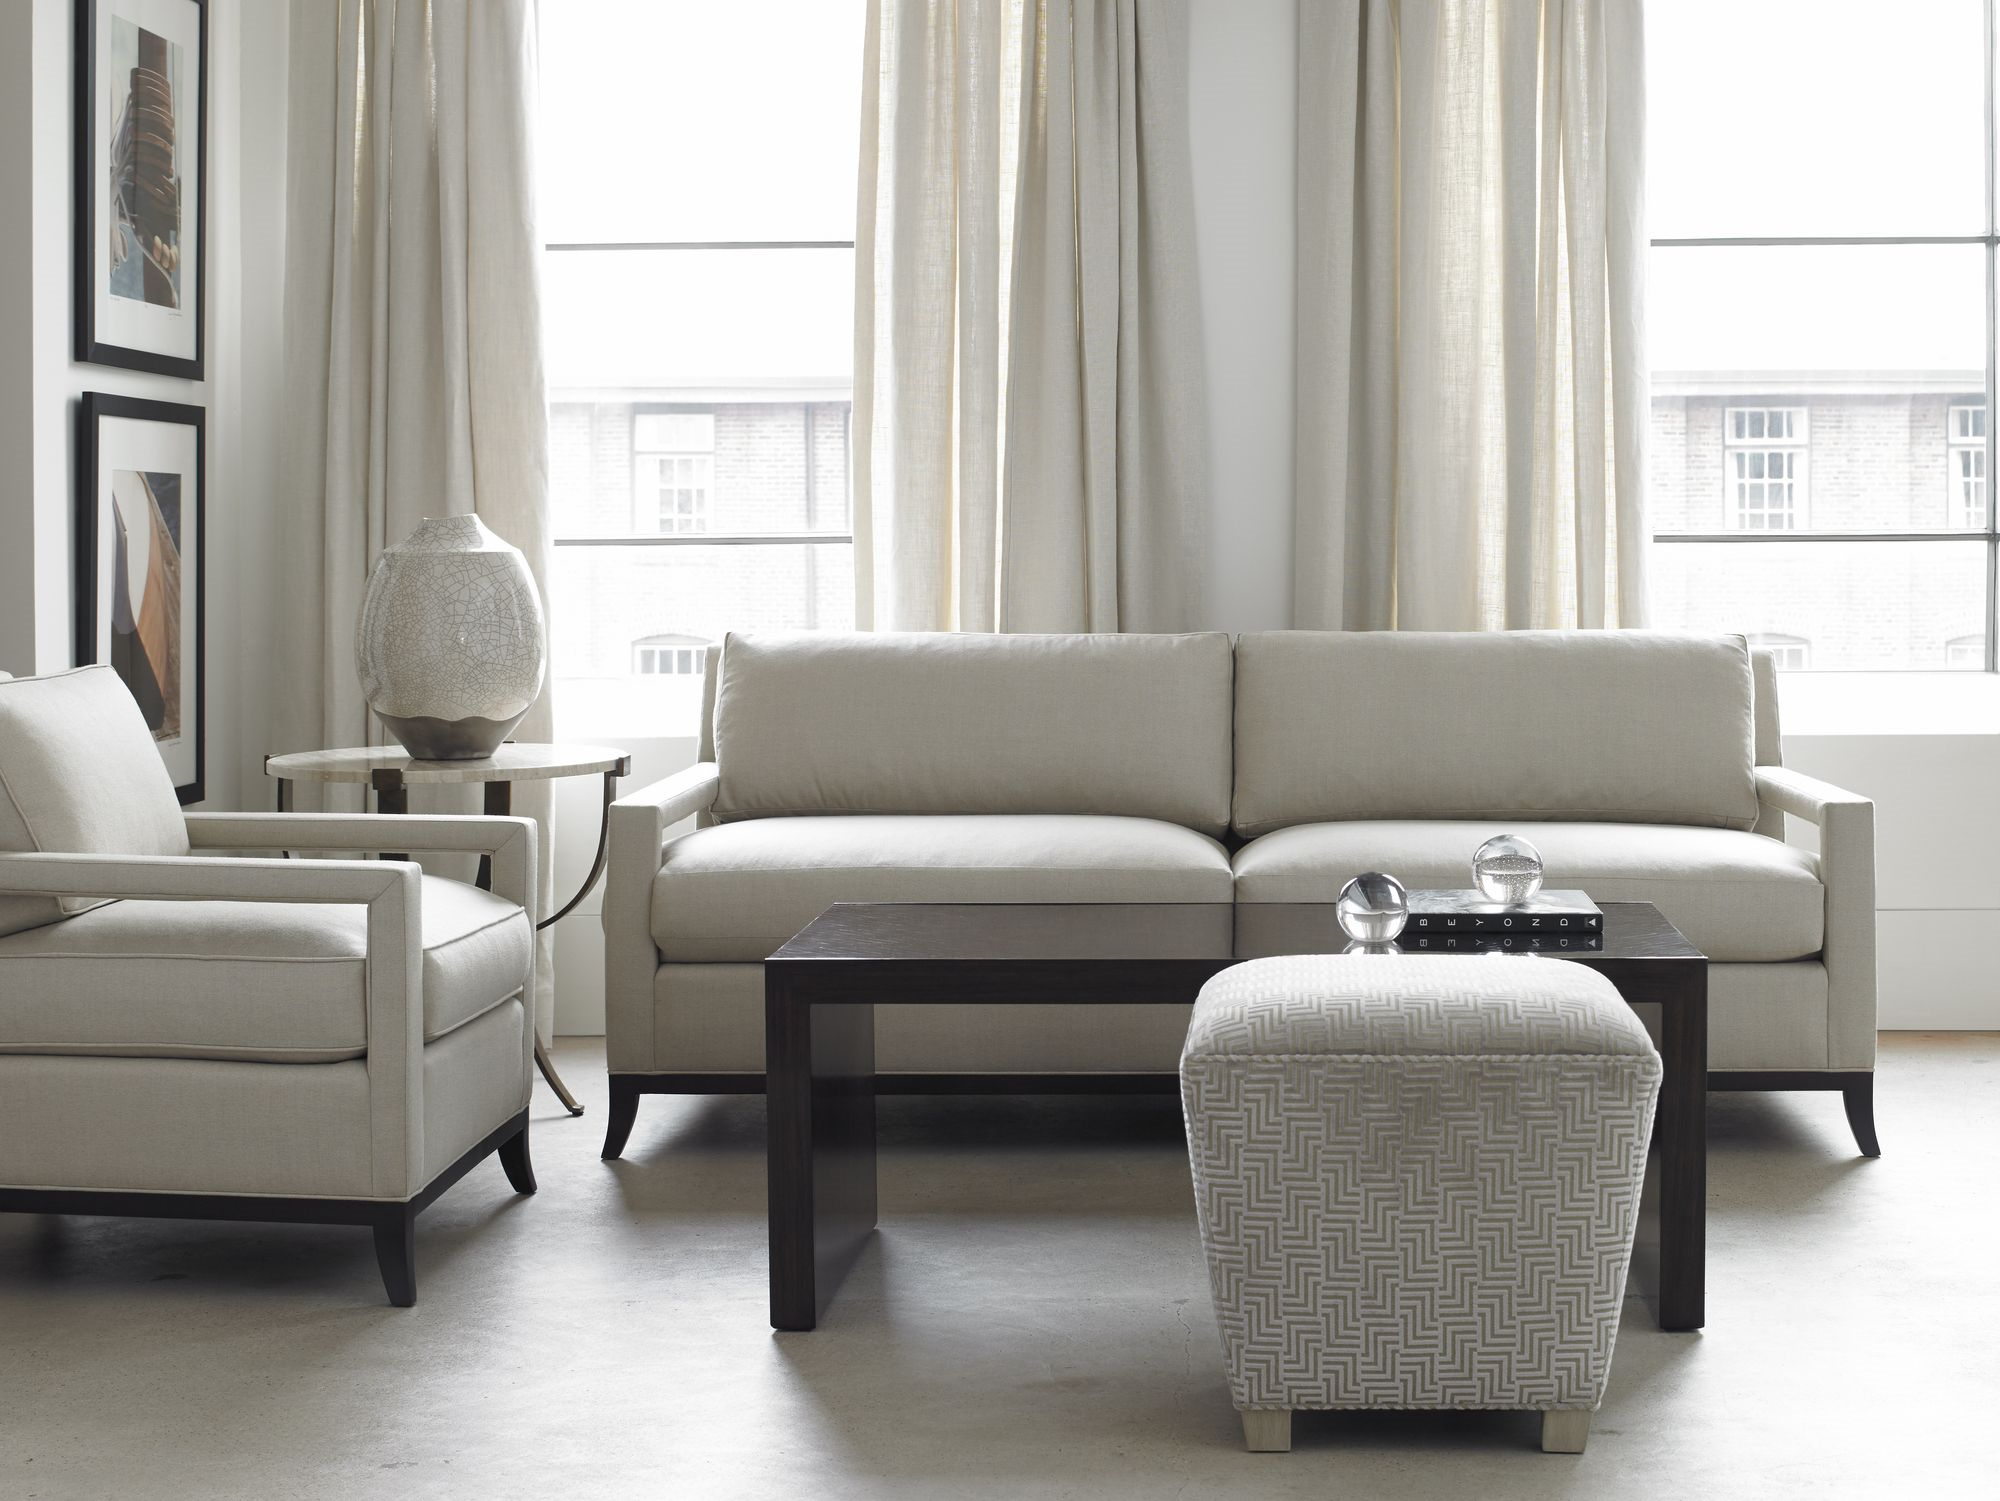 Pearson Inspiration Luxury Furnishings & Textiles